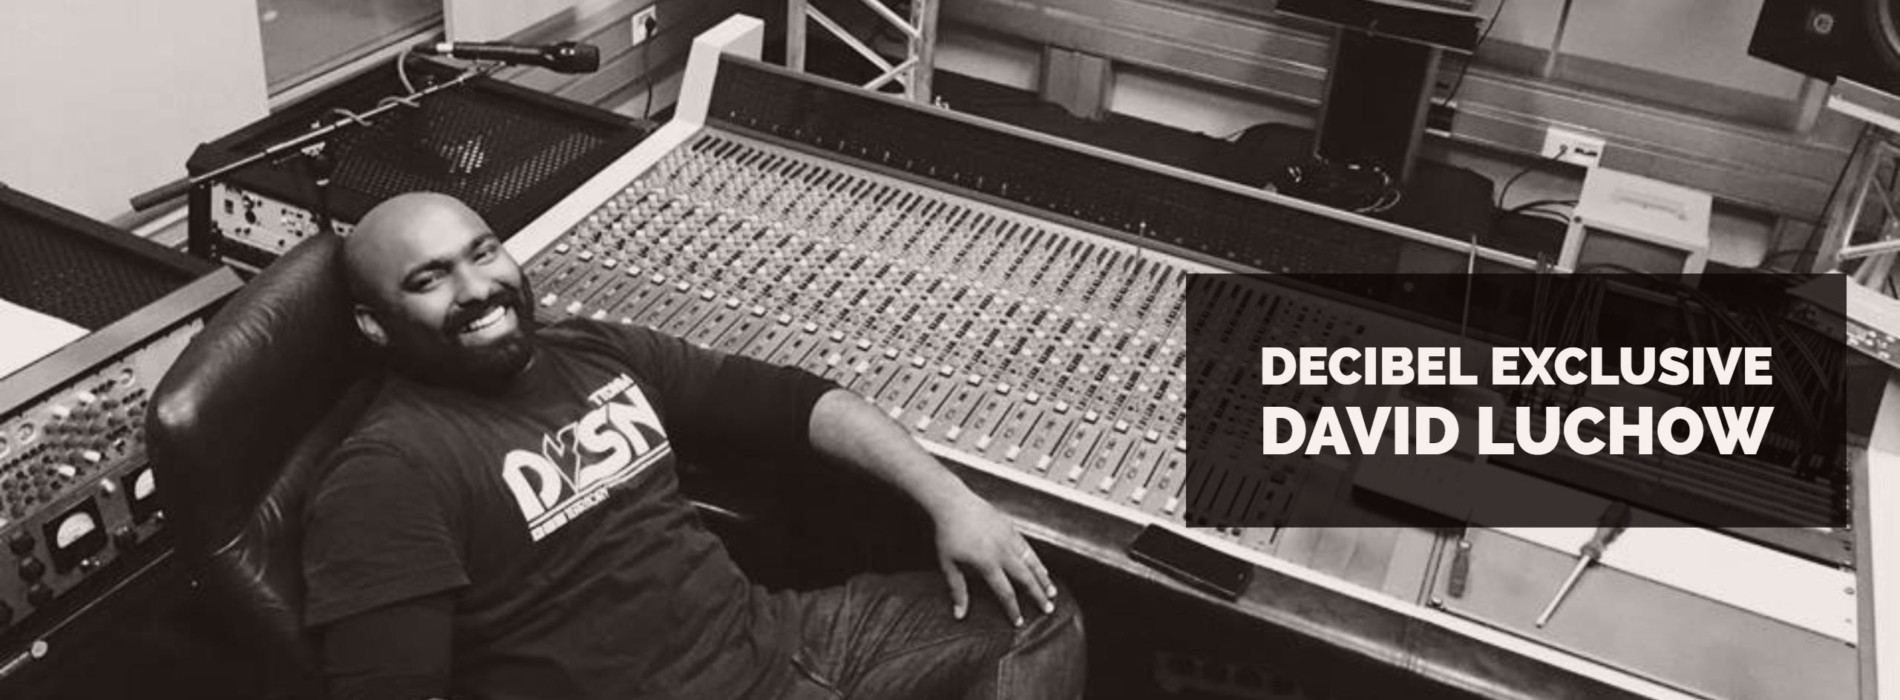 Decibel Exclusive : David Luchow